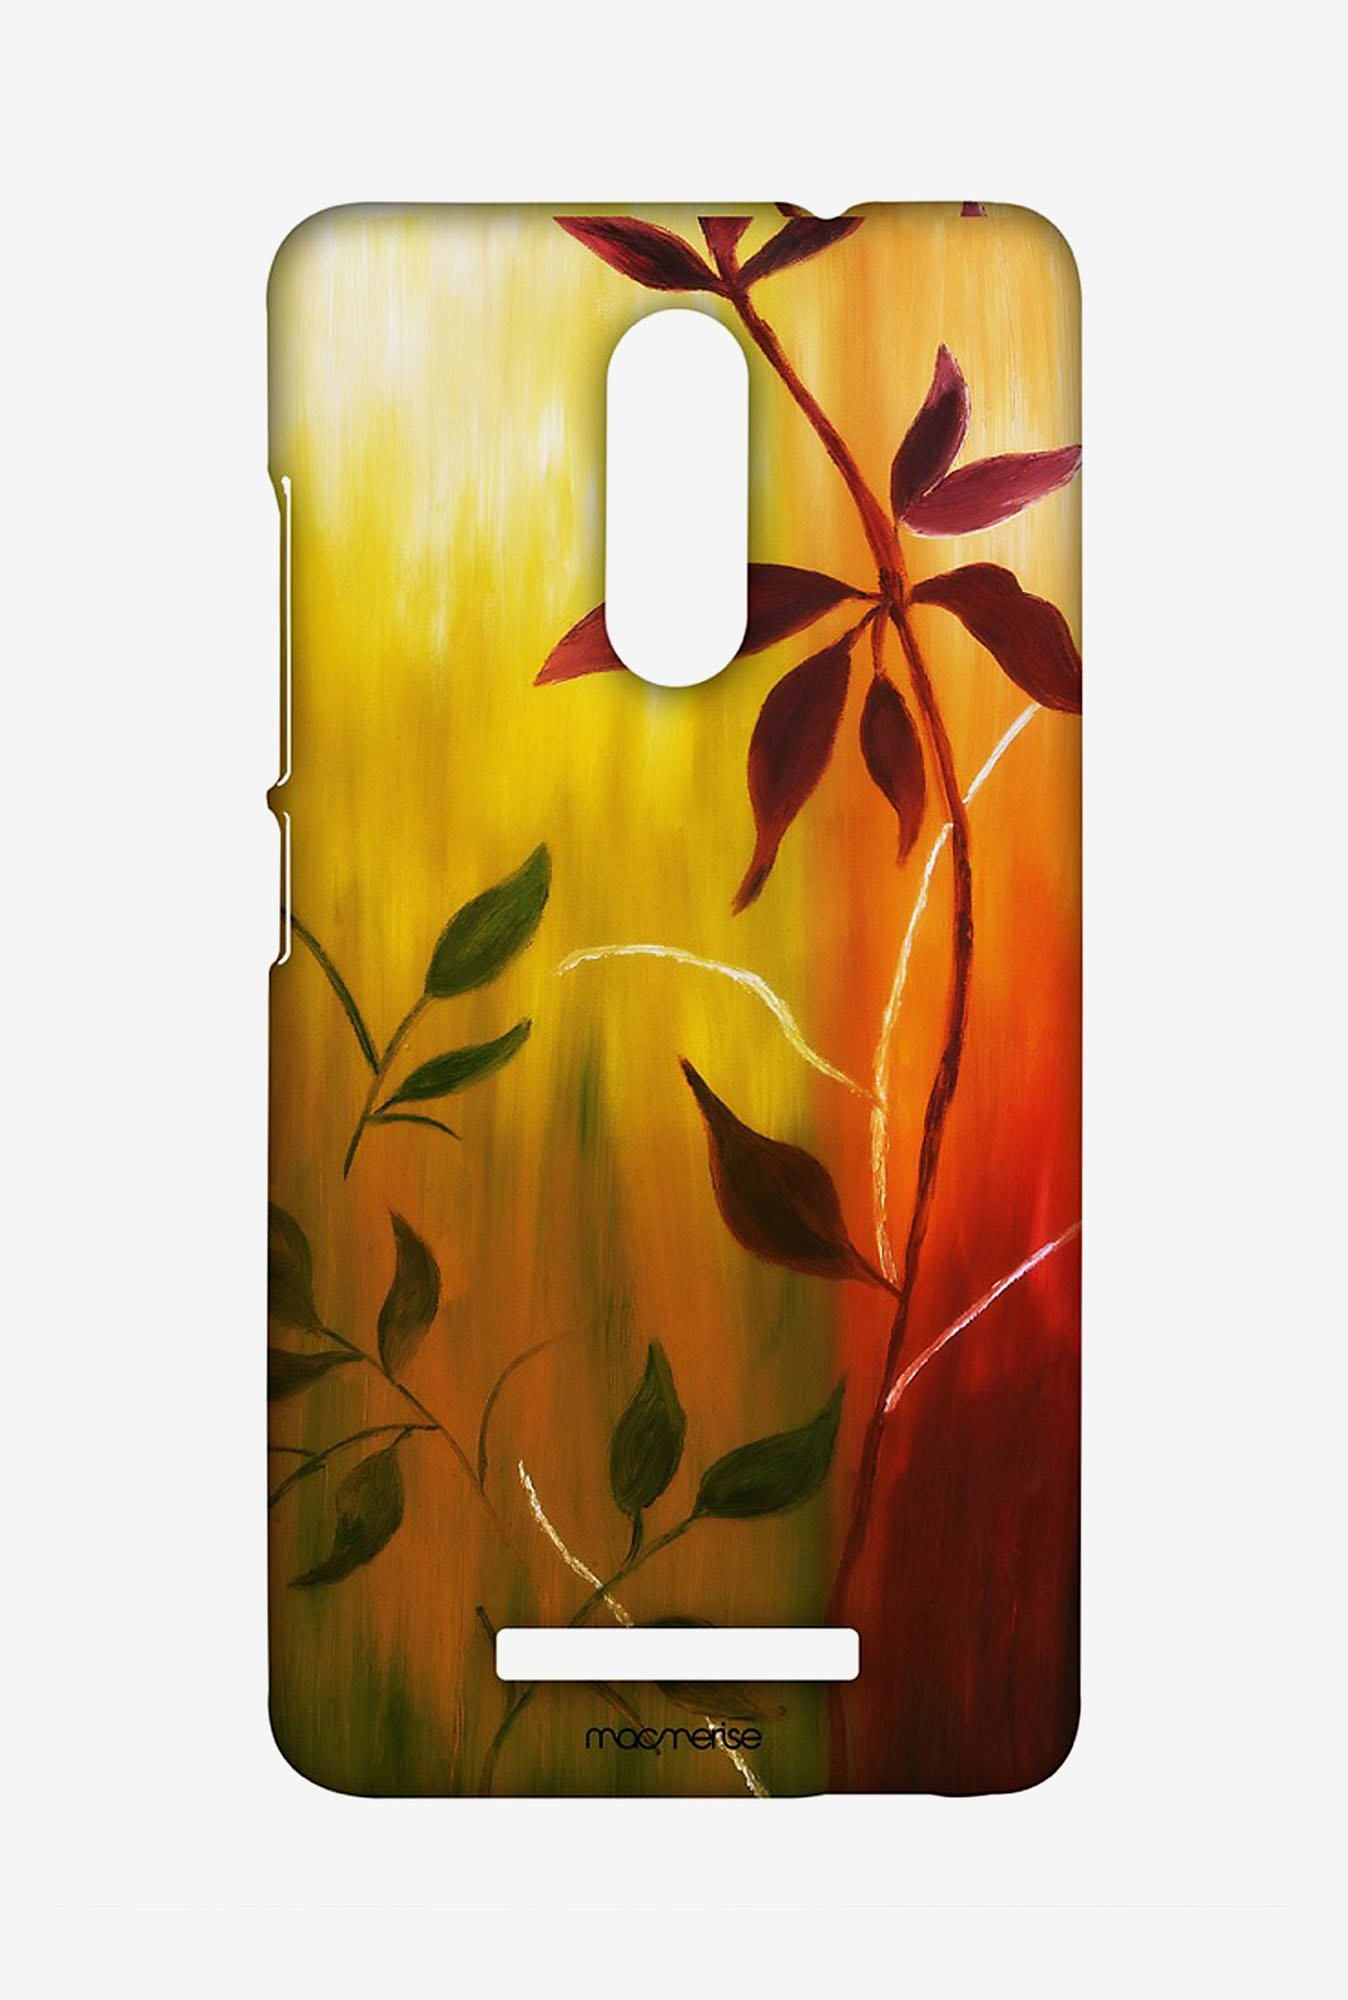 Macmerise XACN3SMI0794 Leaf Art Sublime Case for Xiaomi Redmi Note 3